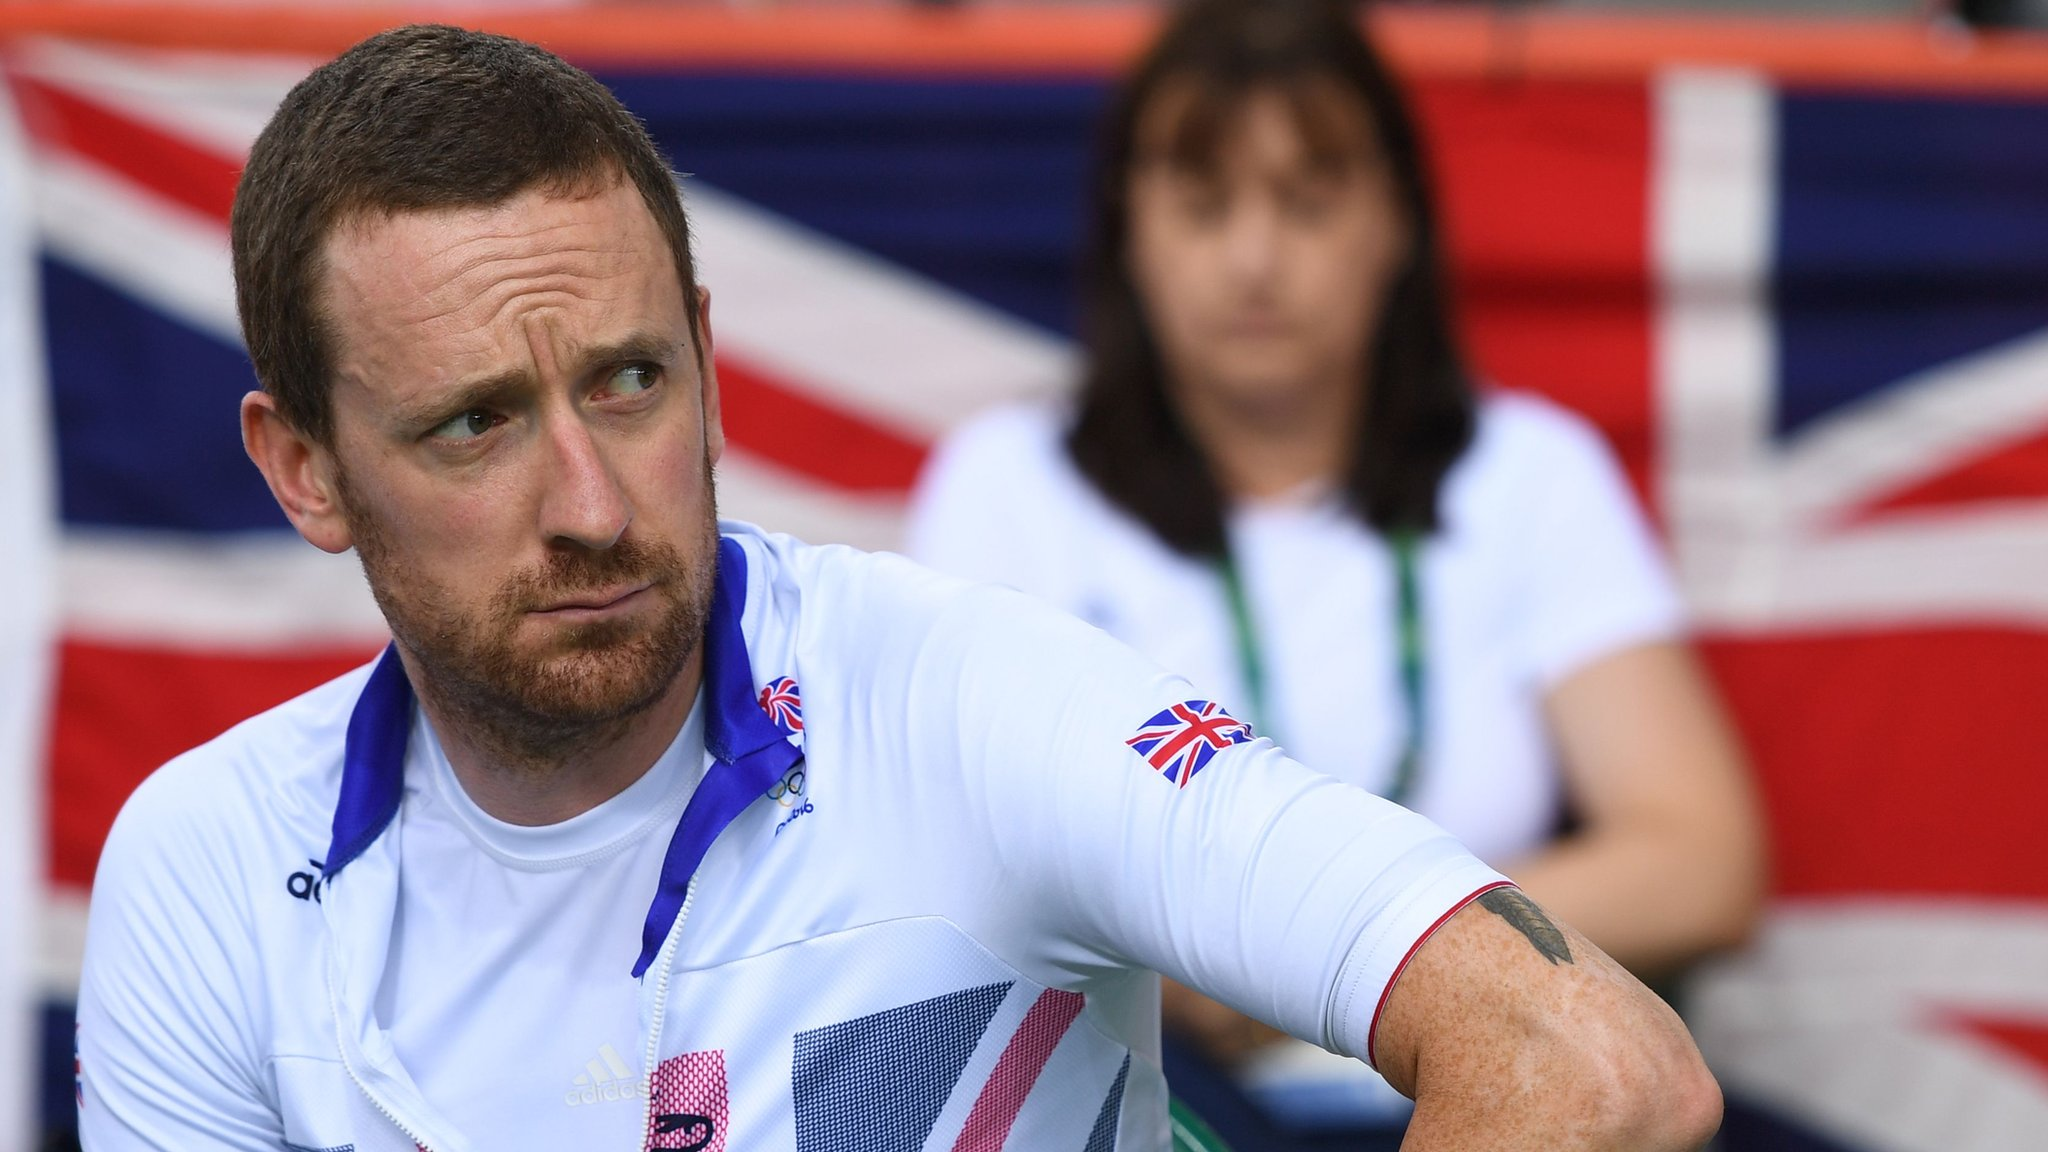 Sir Bradley Wiggins will make his competitive rowing debut at December's British Indoor Championships